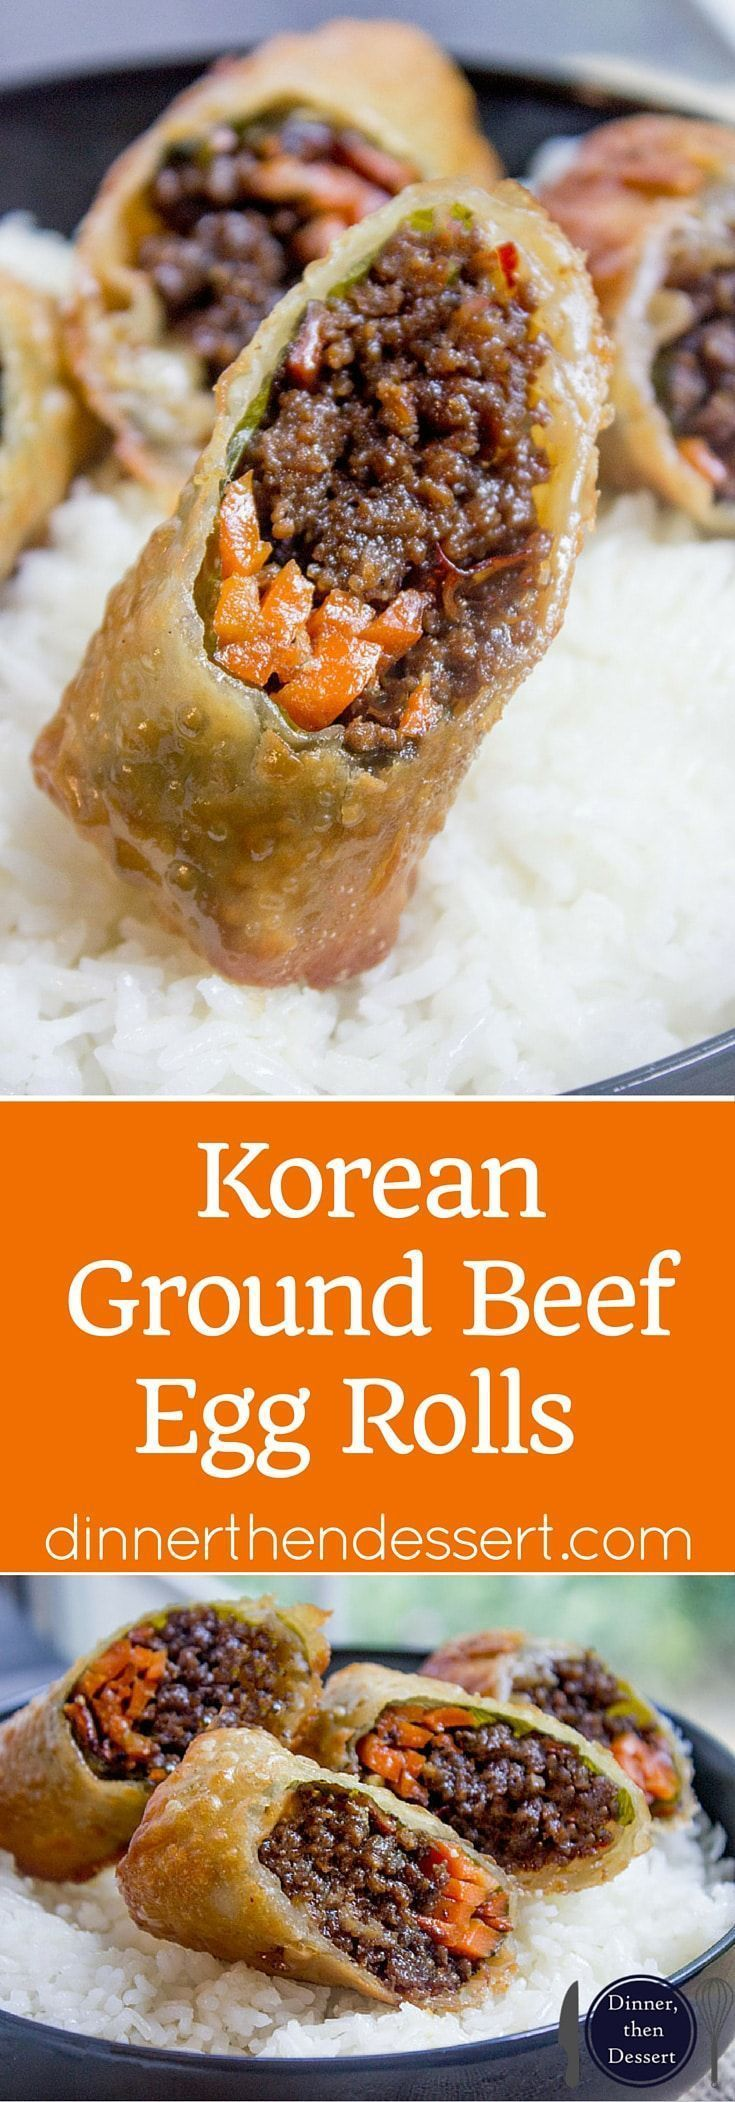 Korean Ground Beef Egg Rolls made with just a few ingredients are a great party food and perfect use of leftovers!   Dinner, Then Dessert